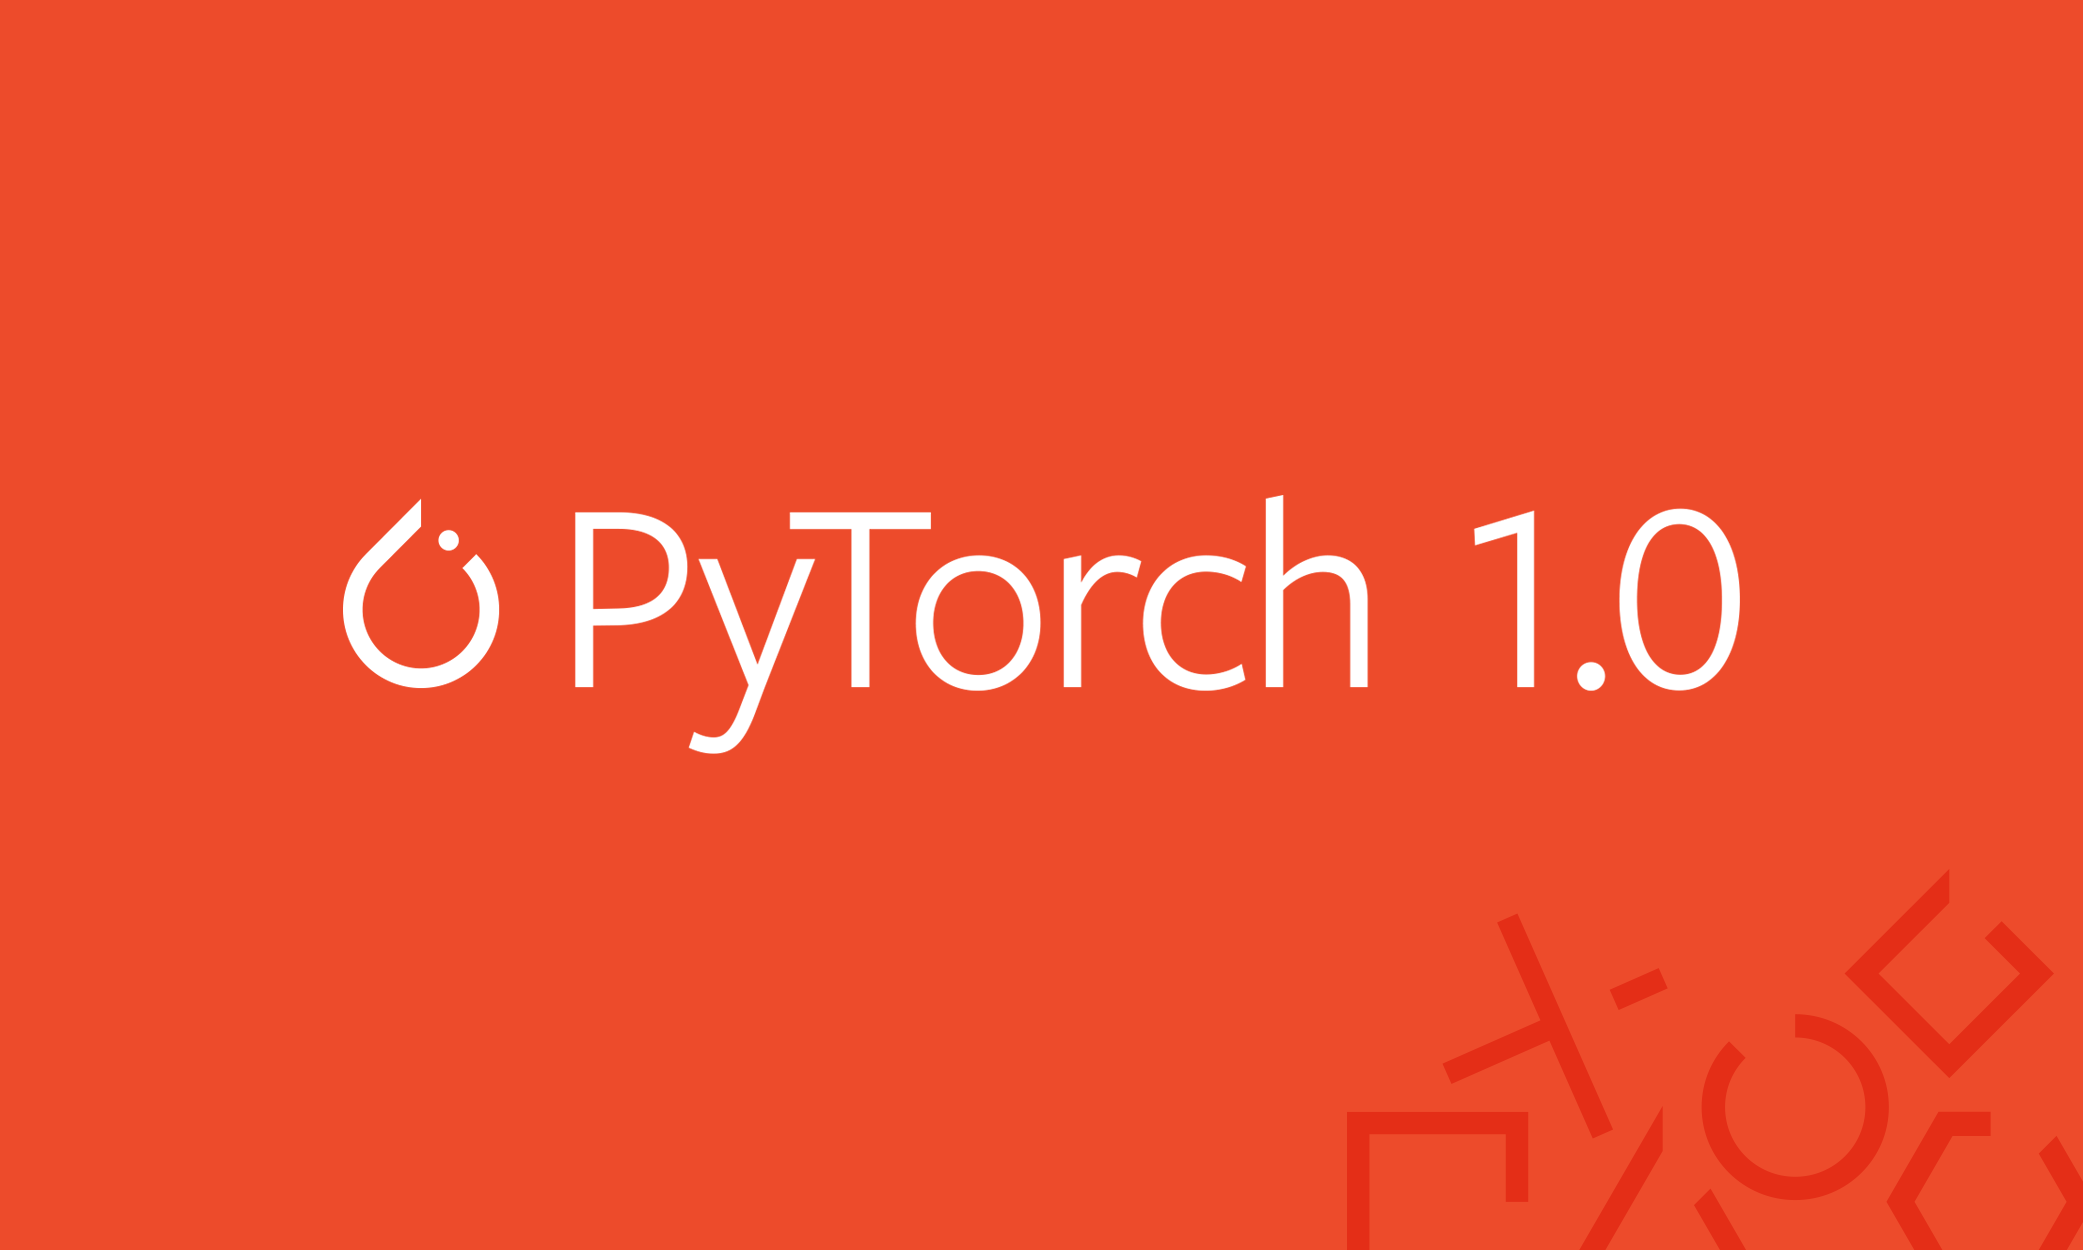 Facebook Says Developers Will Love PyTorch 1 0